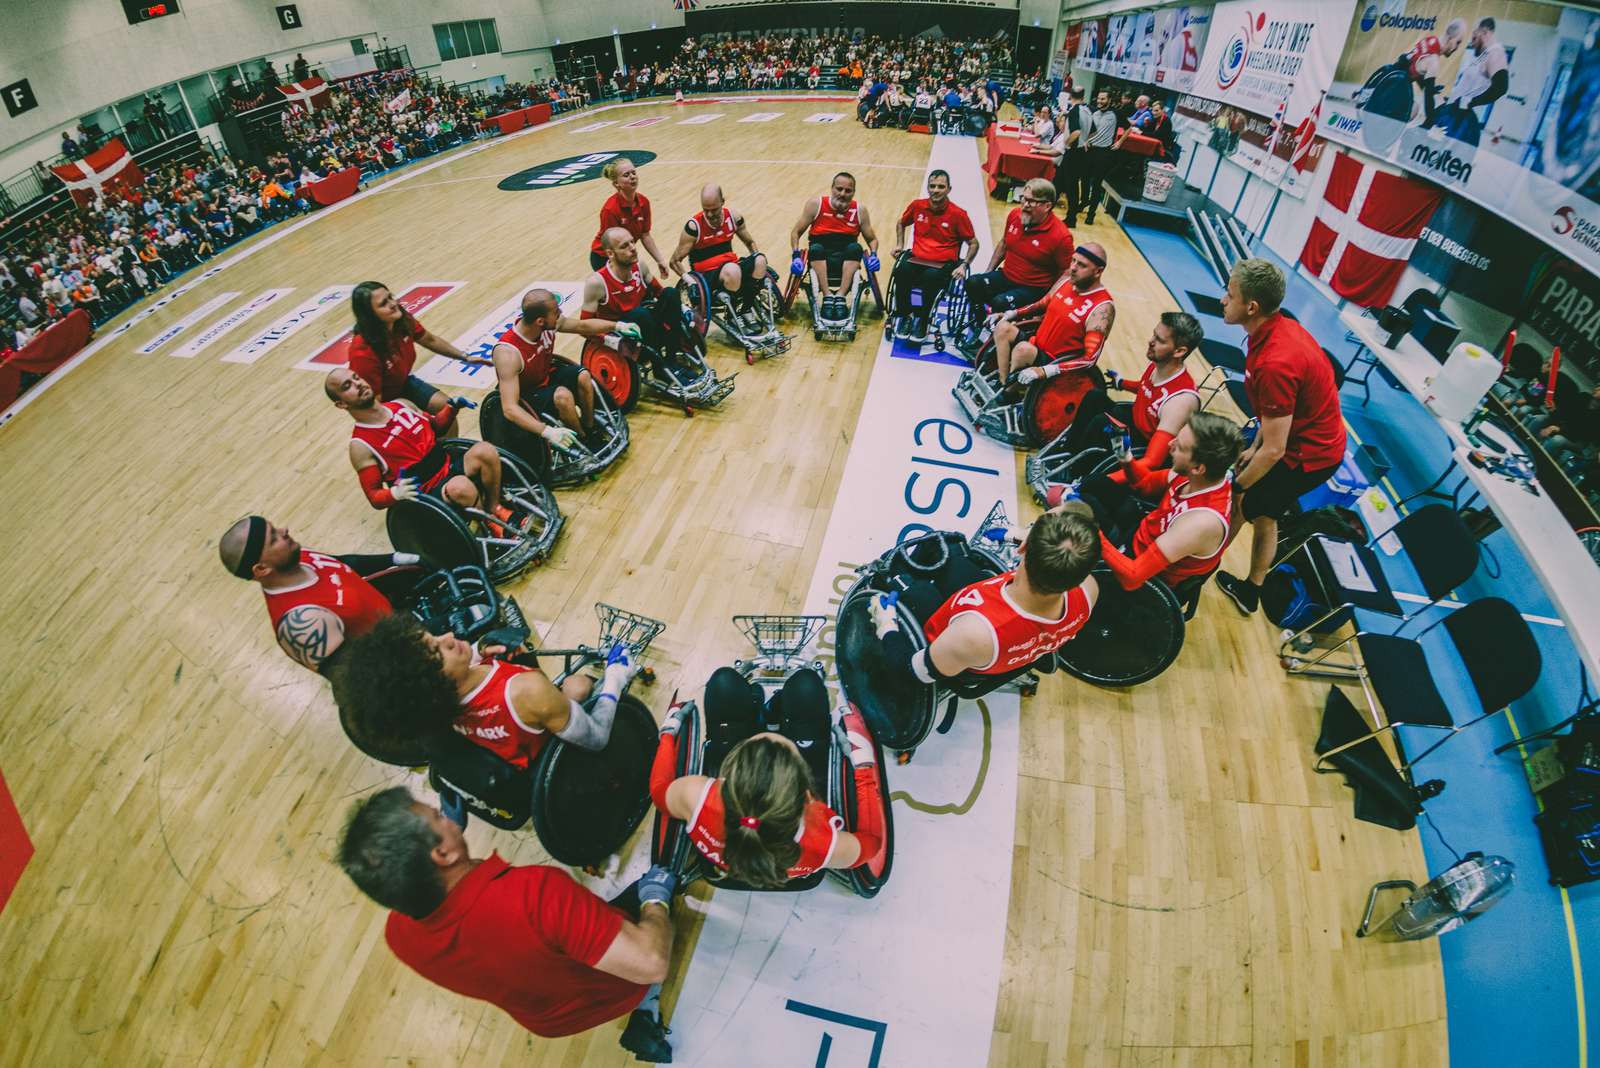 Hosts Denmark stun French at IWRF European Championship Division A to book place at Tokyo 2020